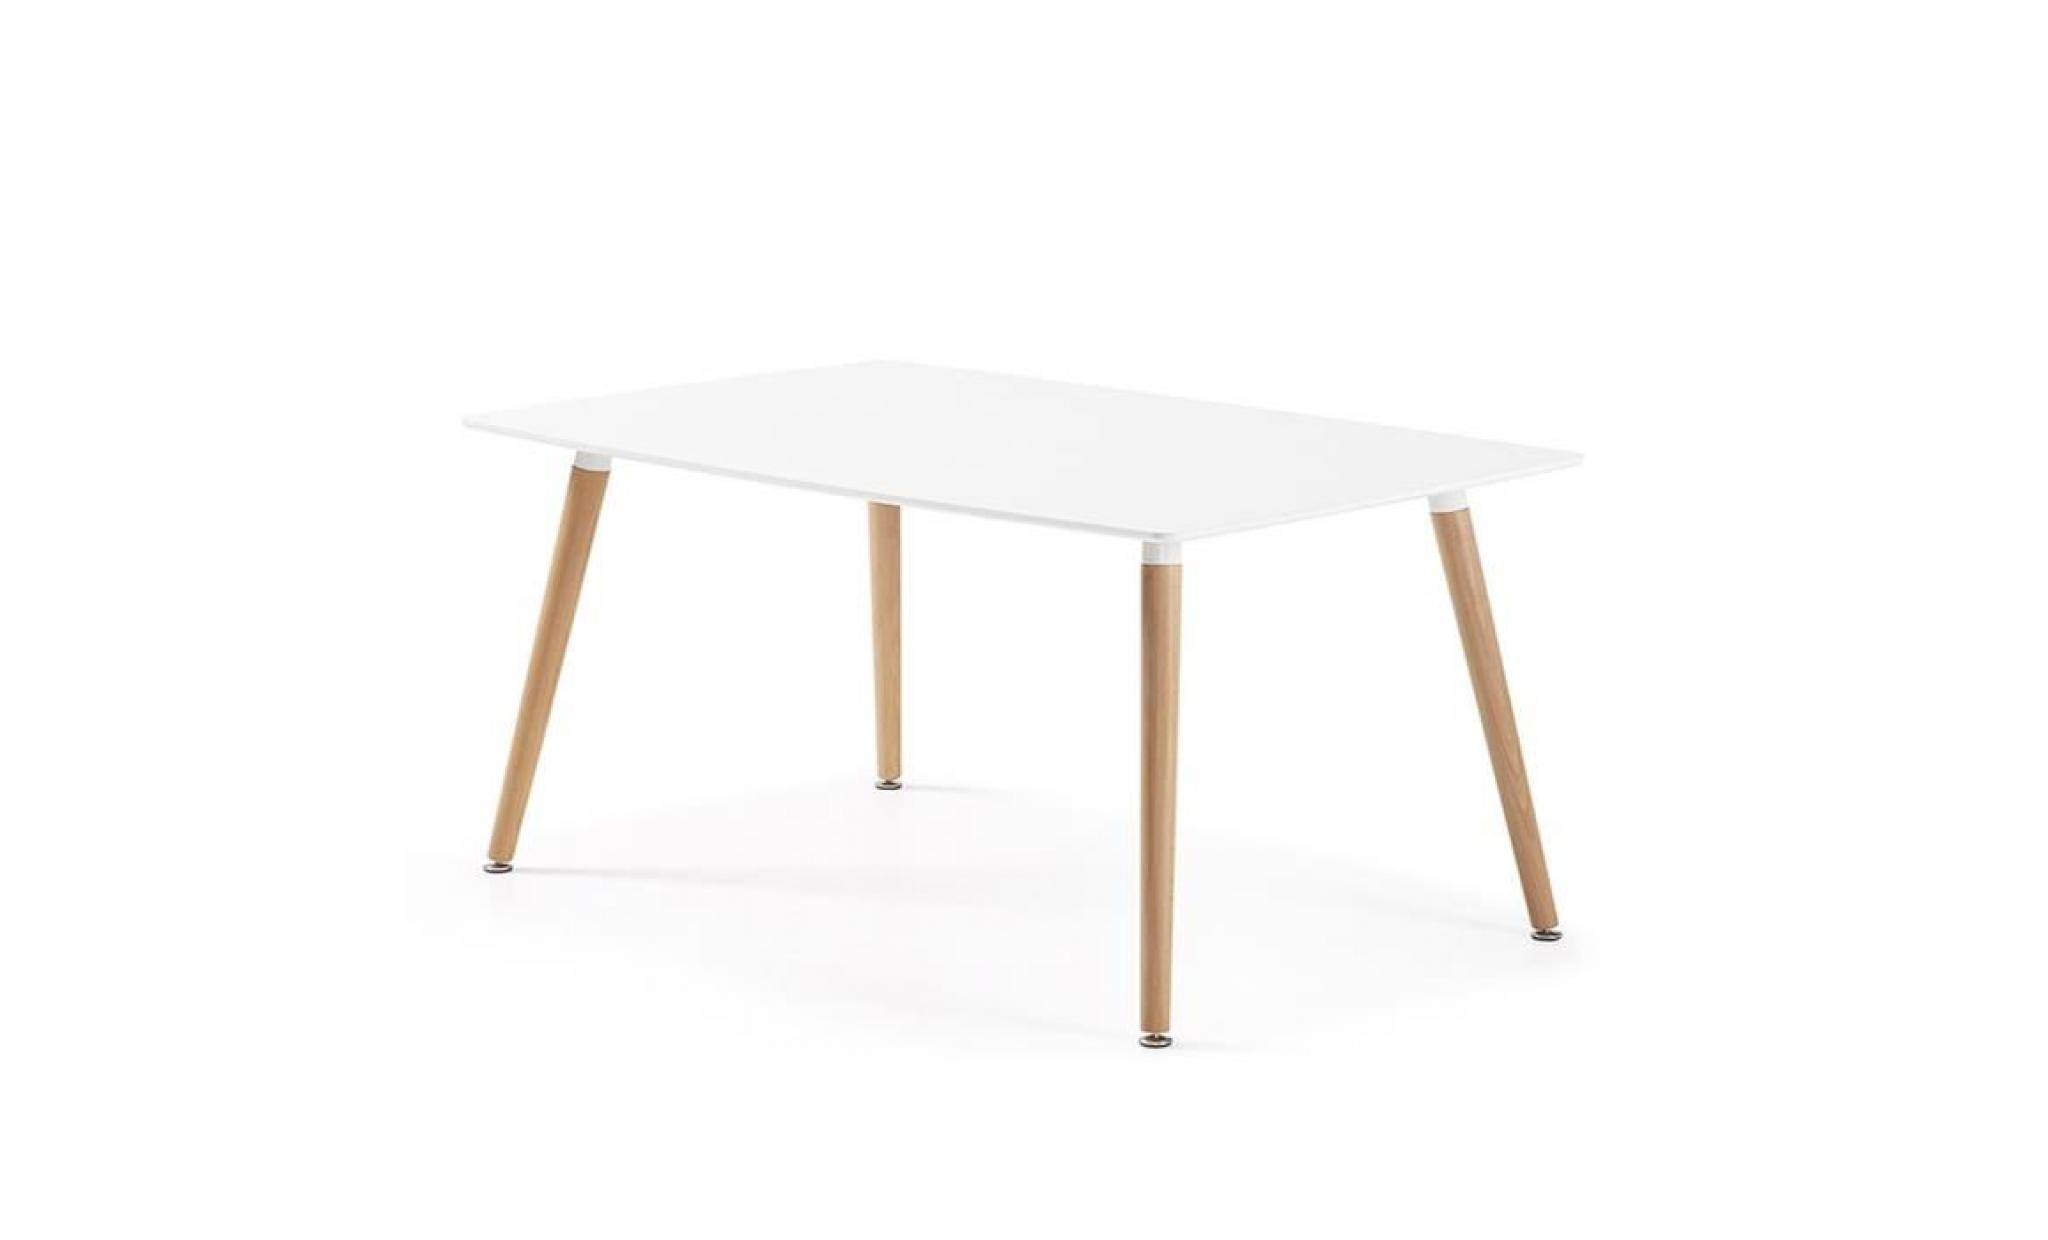 Table manger rectangulaire design blanche en bois laqu for Table de salle a manger design blanche